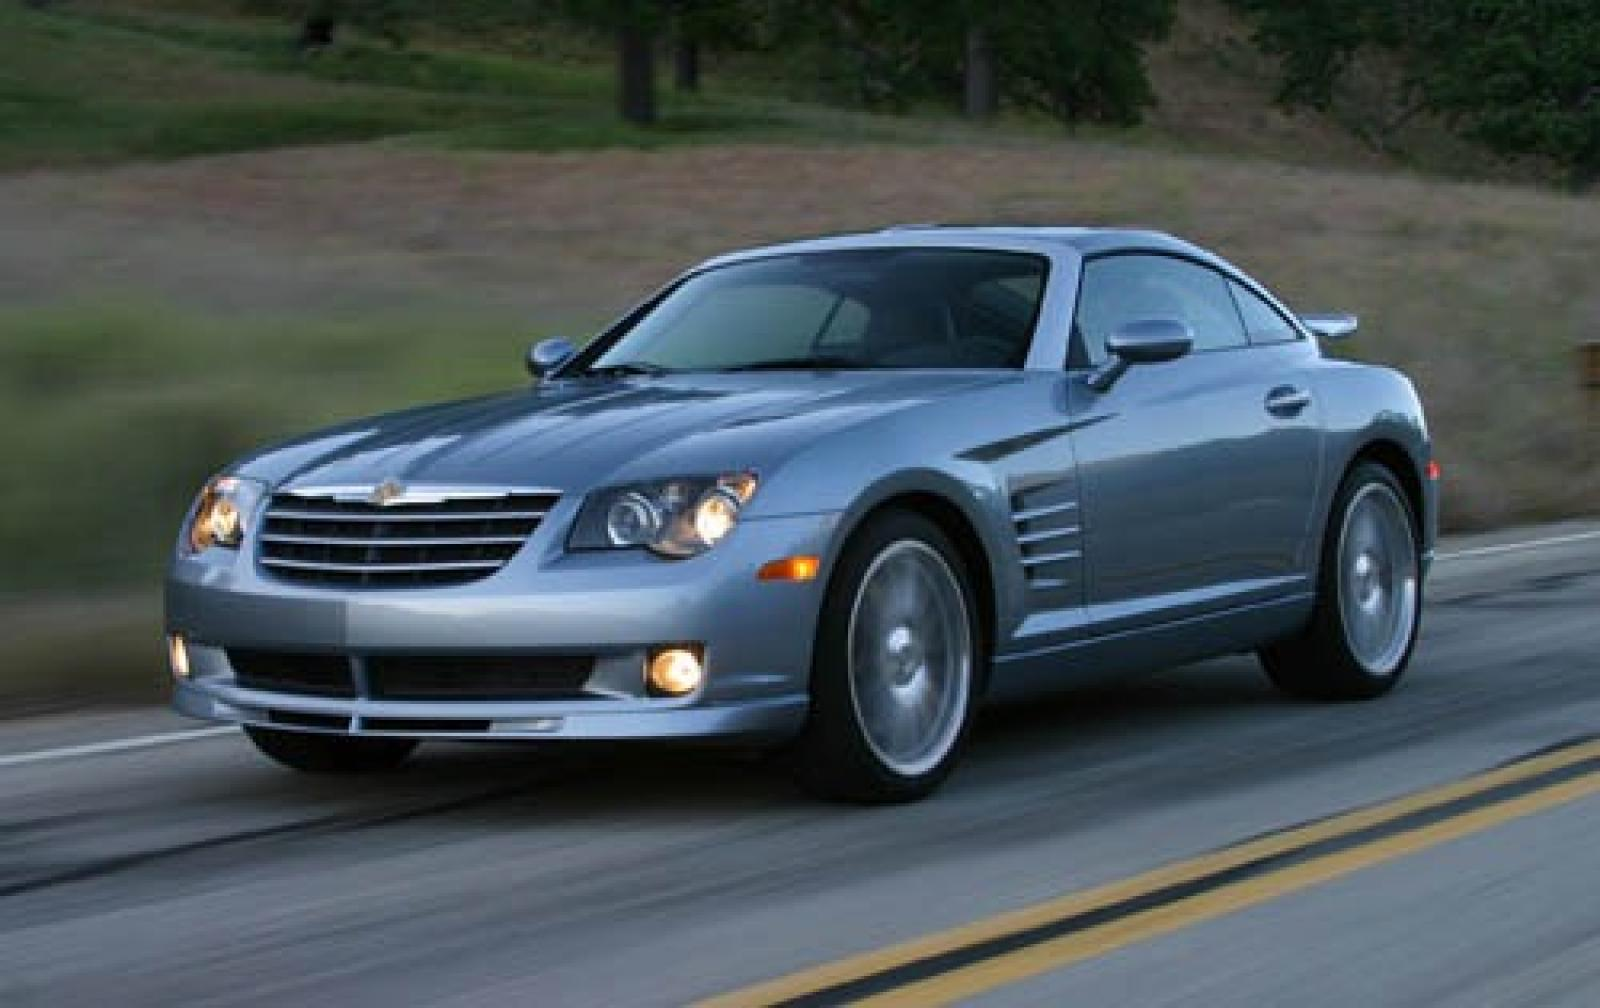 2007 chrysler crossfire information and photos zombiedrive. Black Bedroom Furniture Sets. Home Design Ideas